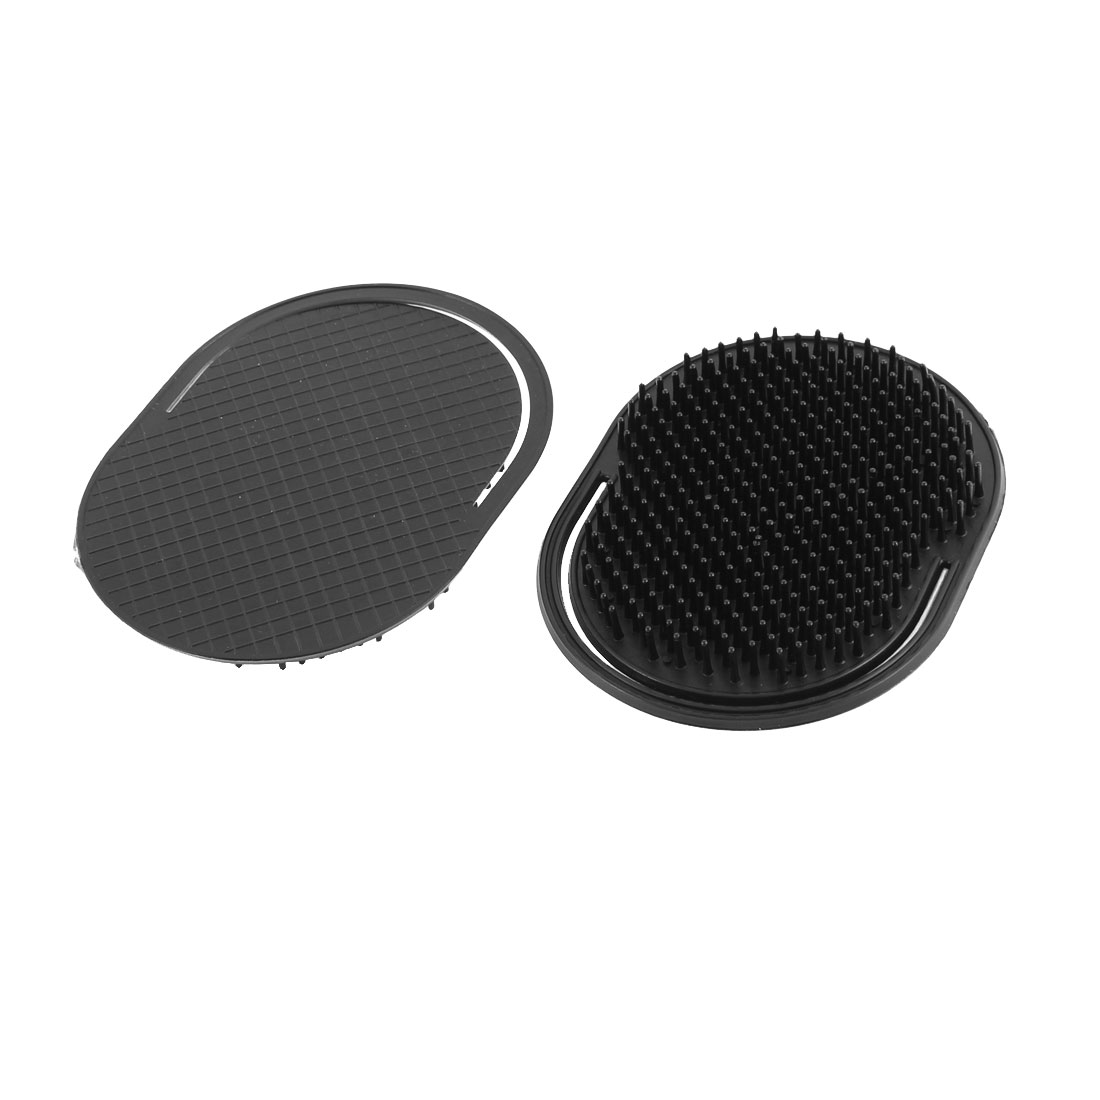 Plastic Oval Shaped Hair Palm Comb Scalp Massage Brush Black 2Pcs